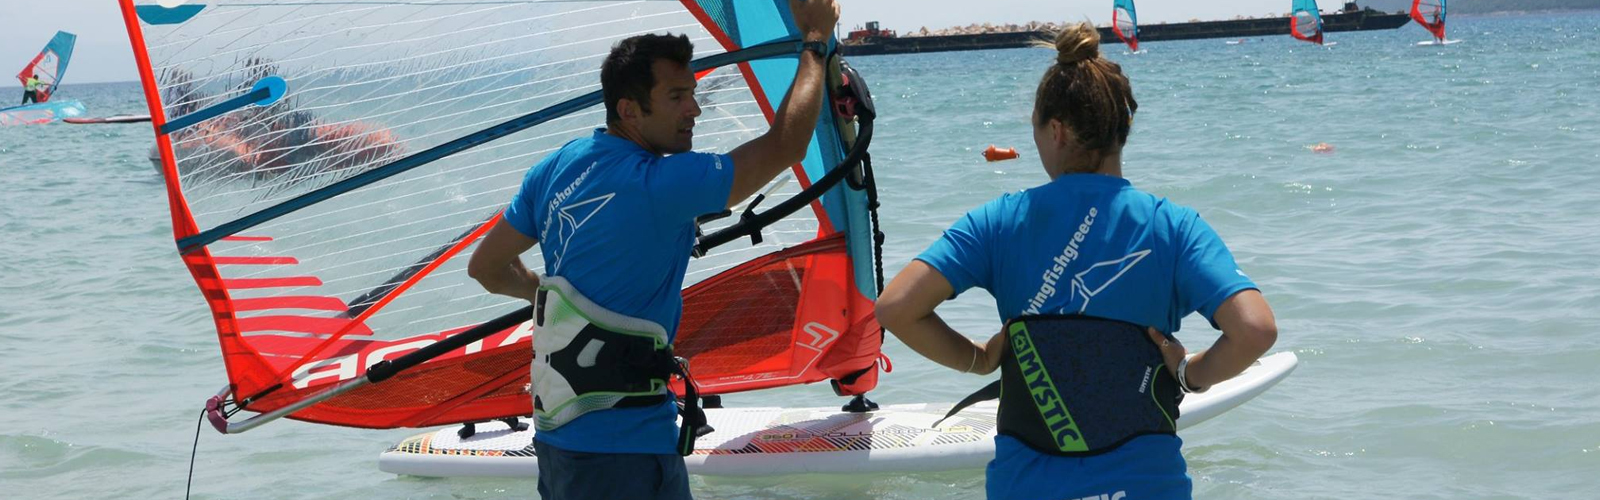 RYA Windsurfing Instructor Course in Greece with Flying Fish